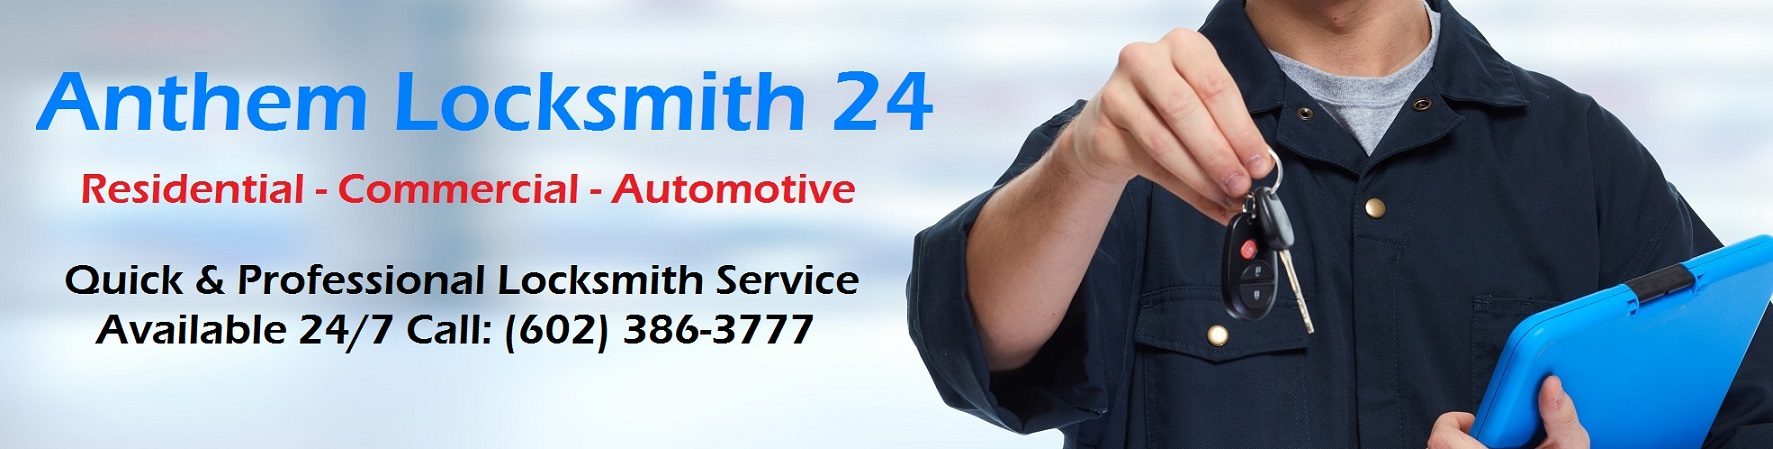 Anthem Locksmith